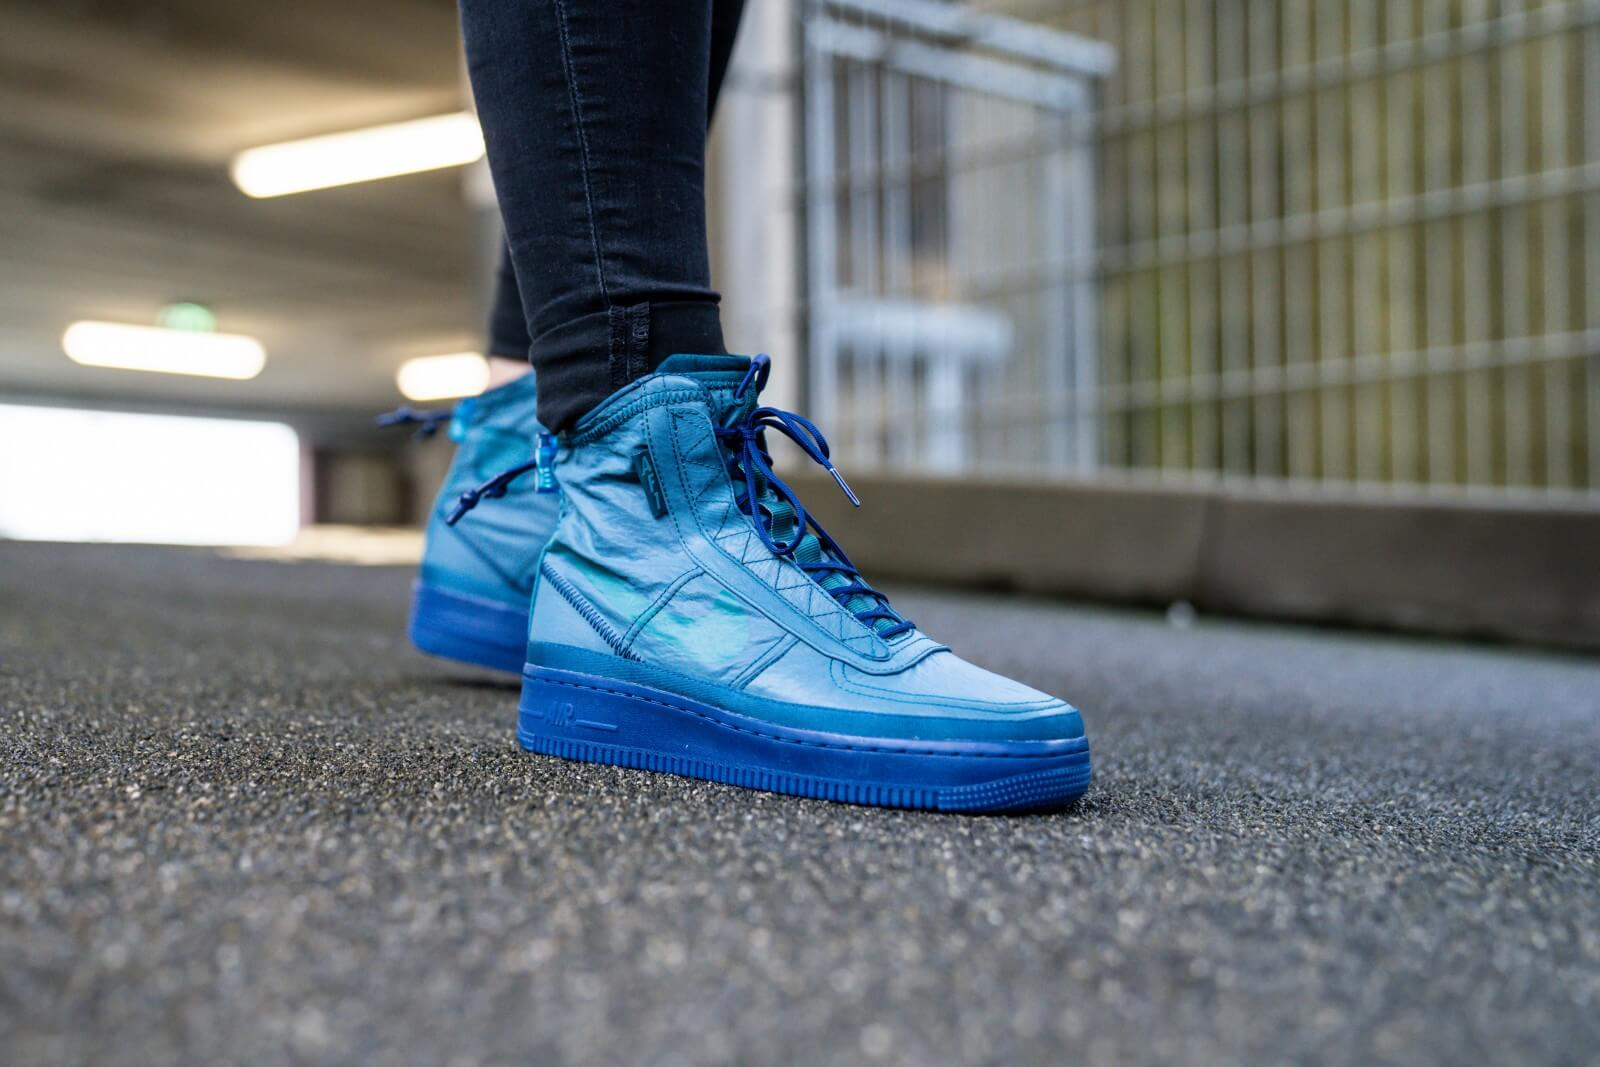 Distribución jalea Contable  Nike Women's Air Force 1 Shell Midnight Turquoise/Geode Teal - BQ6096-300